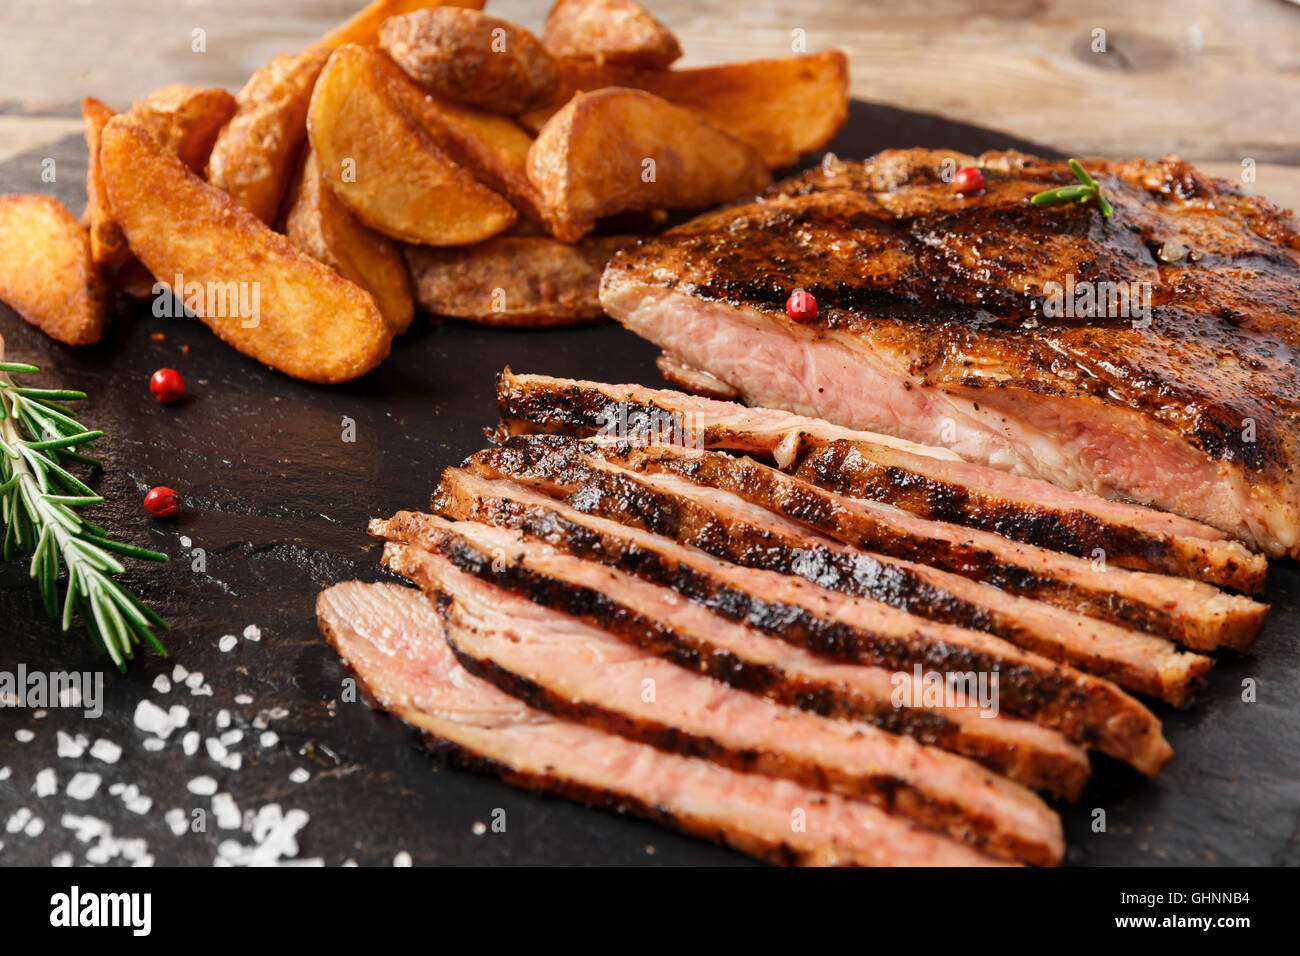 Beef steak sliced with baked potato and sauce - Stock Image